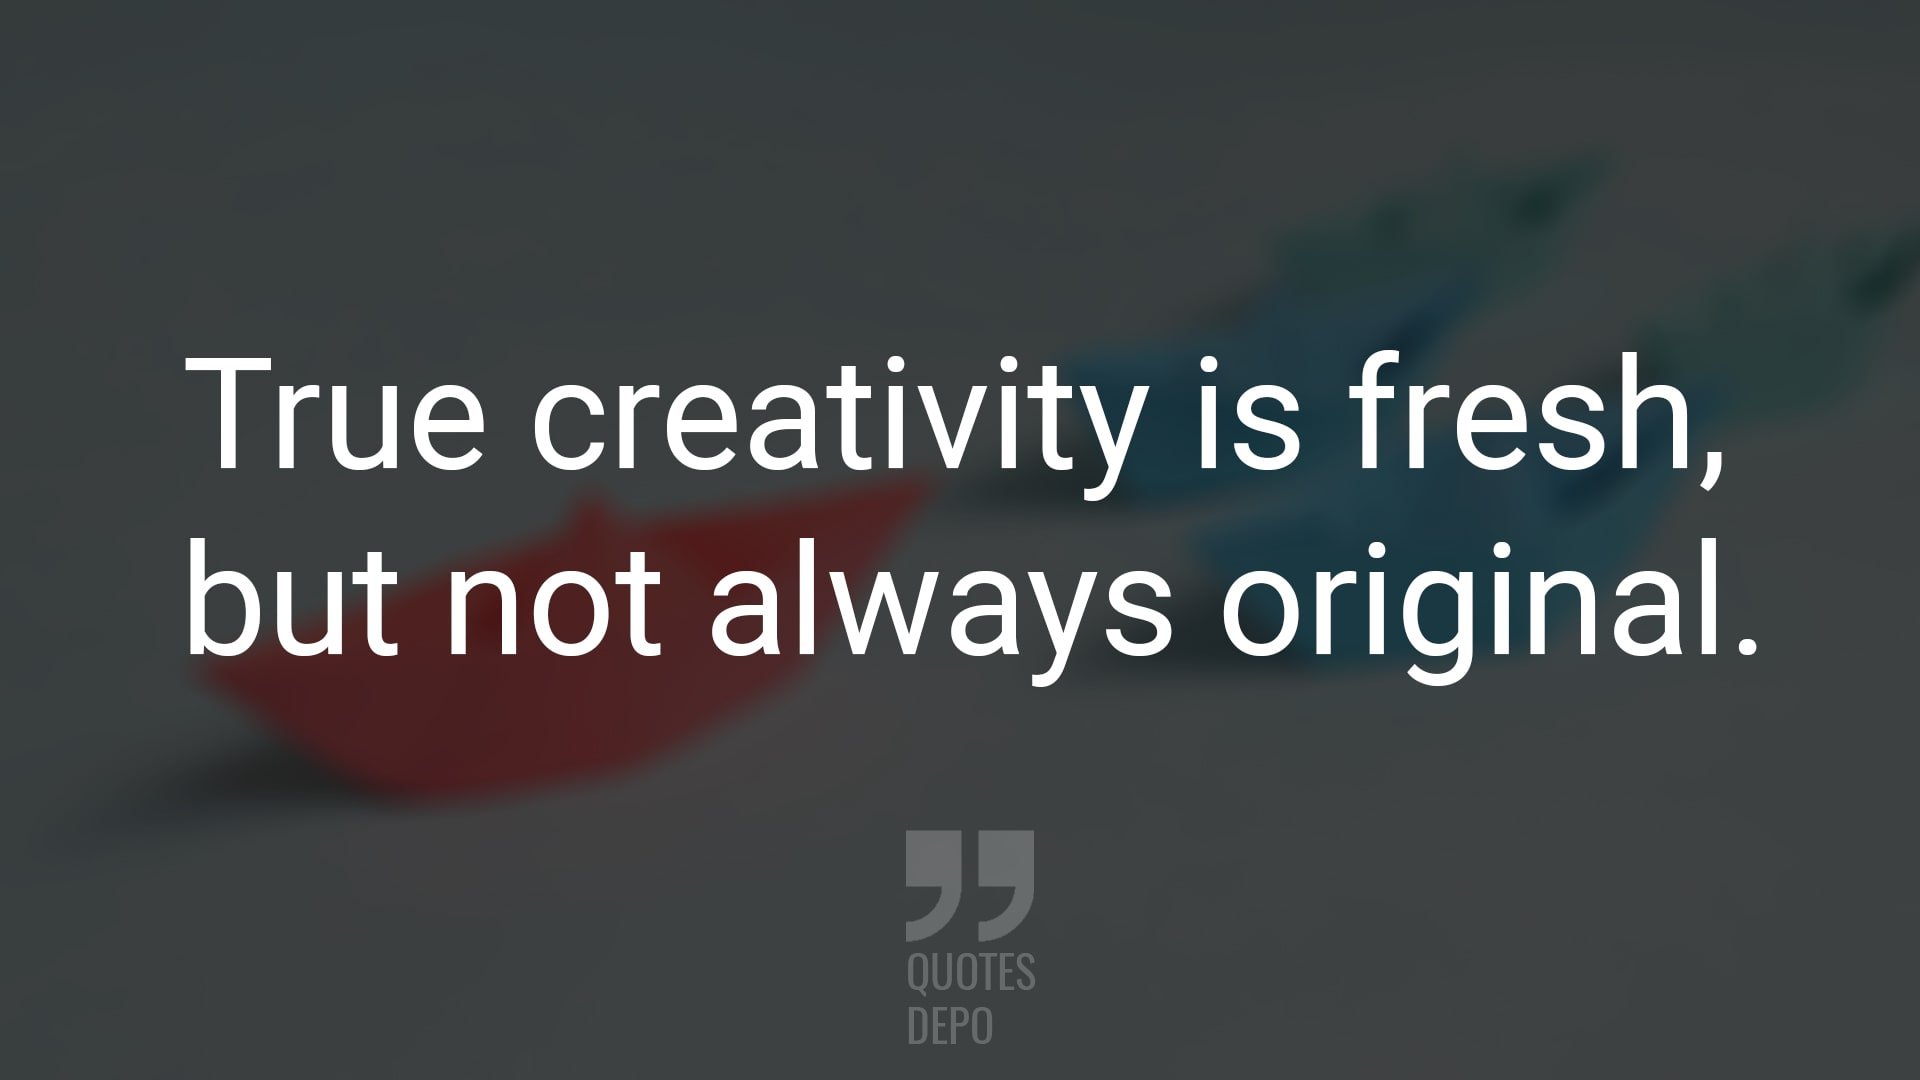 True Creativity is Fresh